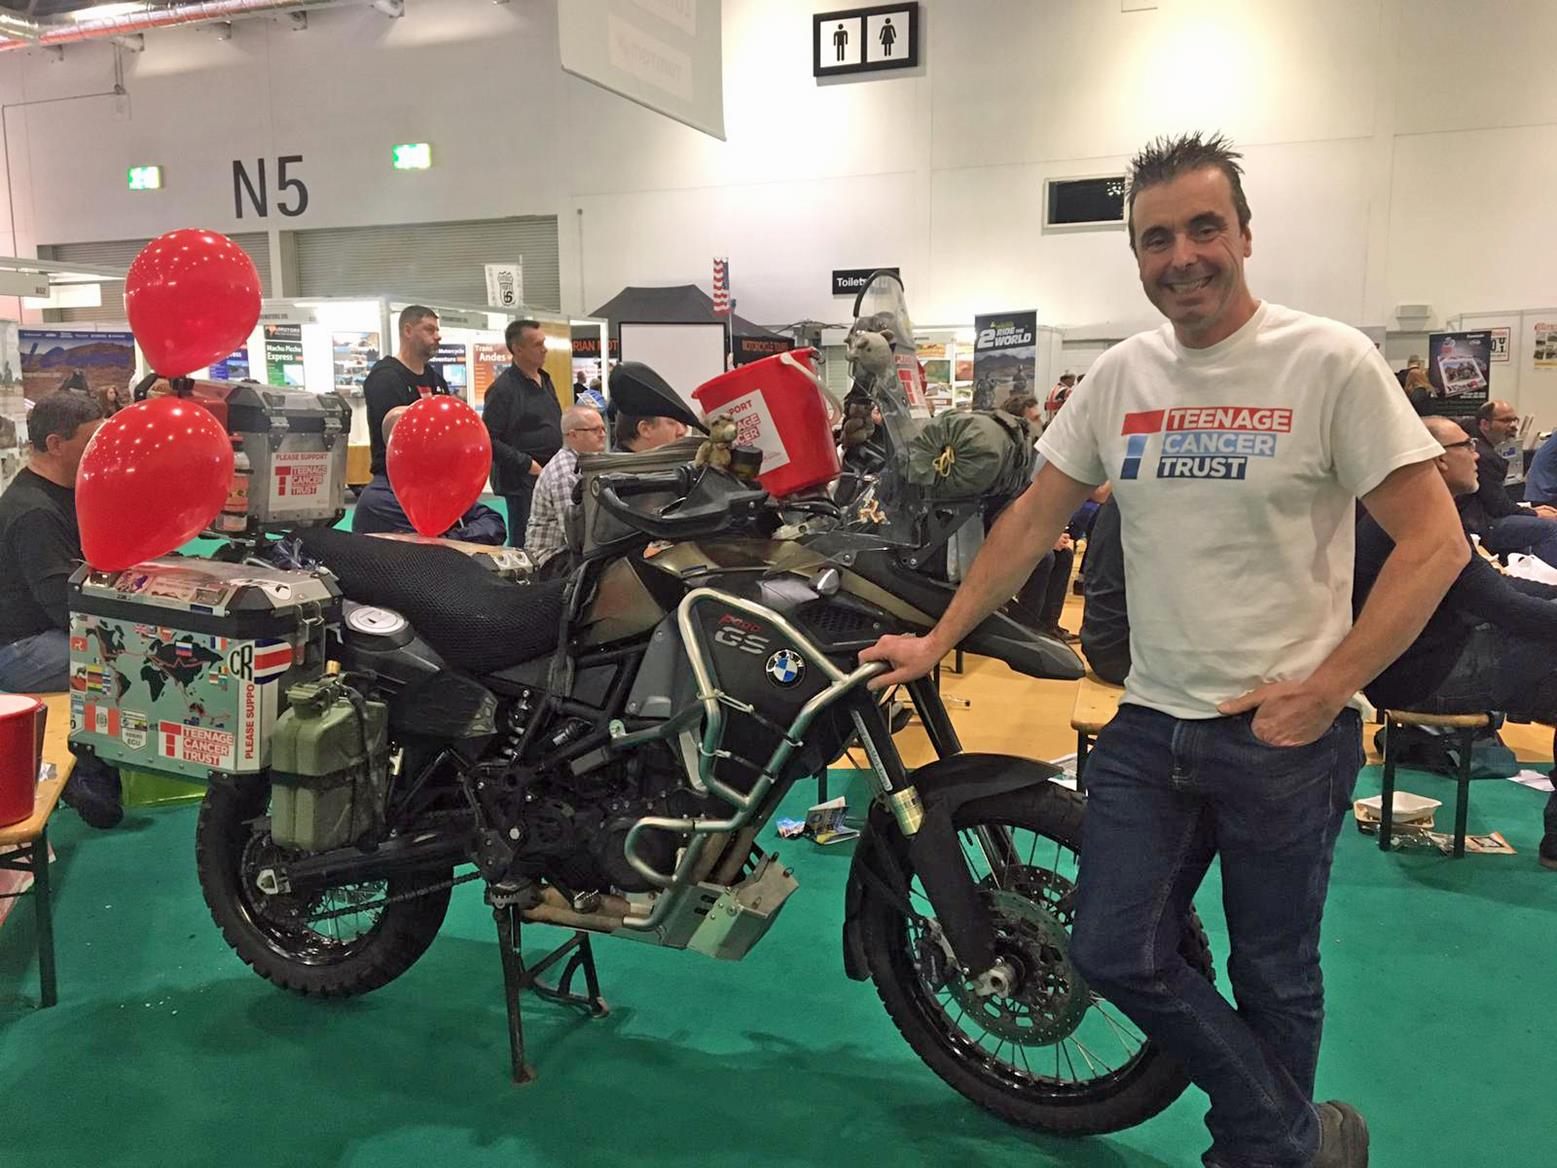 Teenage Cancer Trust raising money at MCN Show